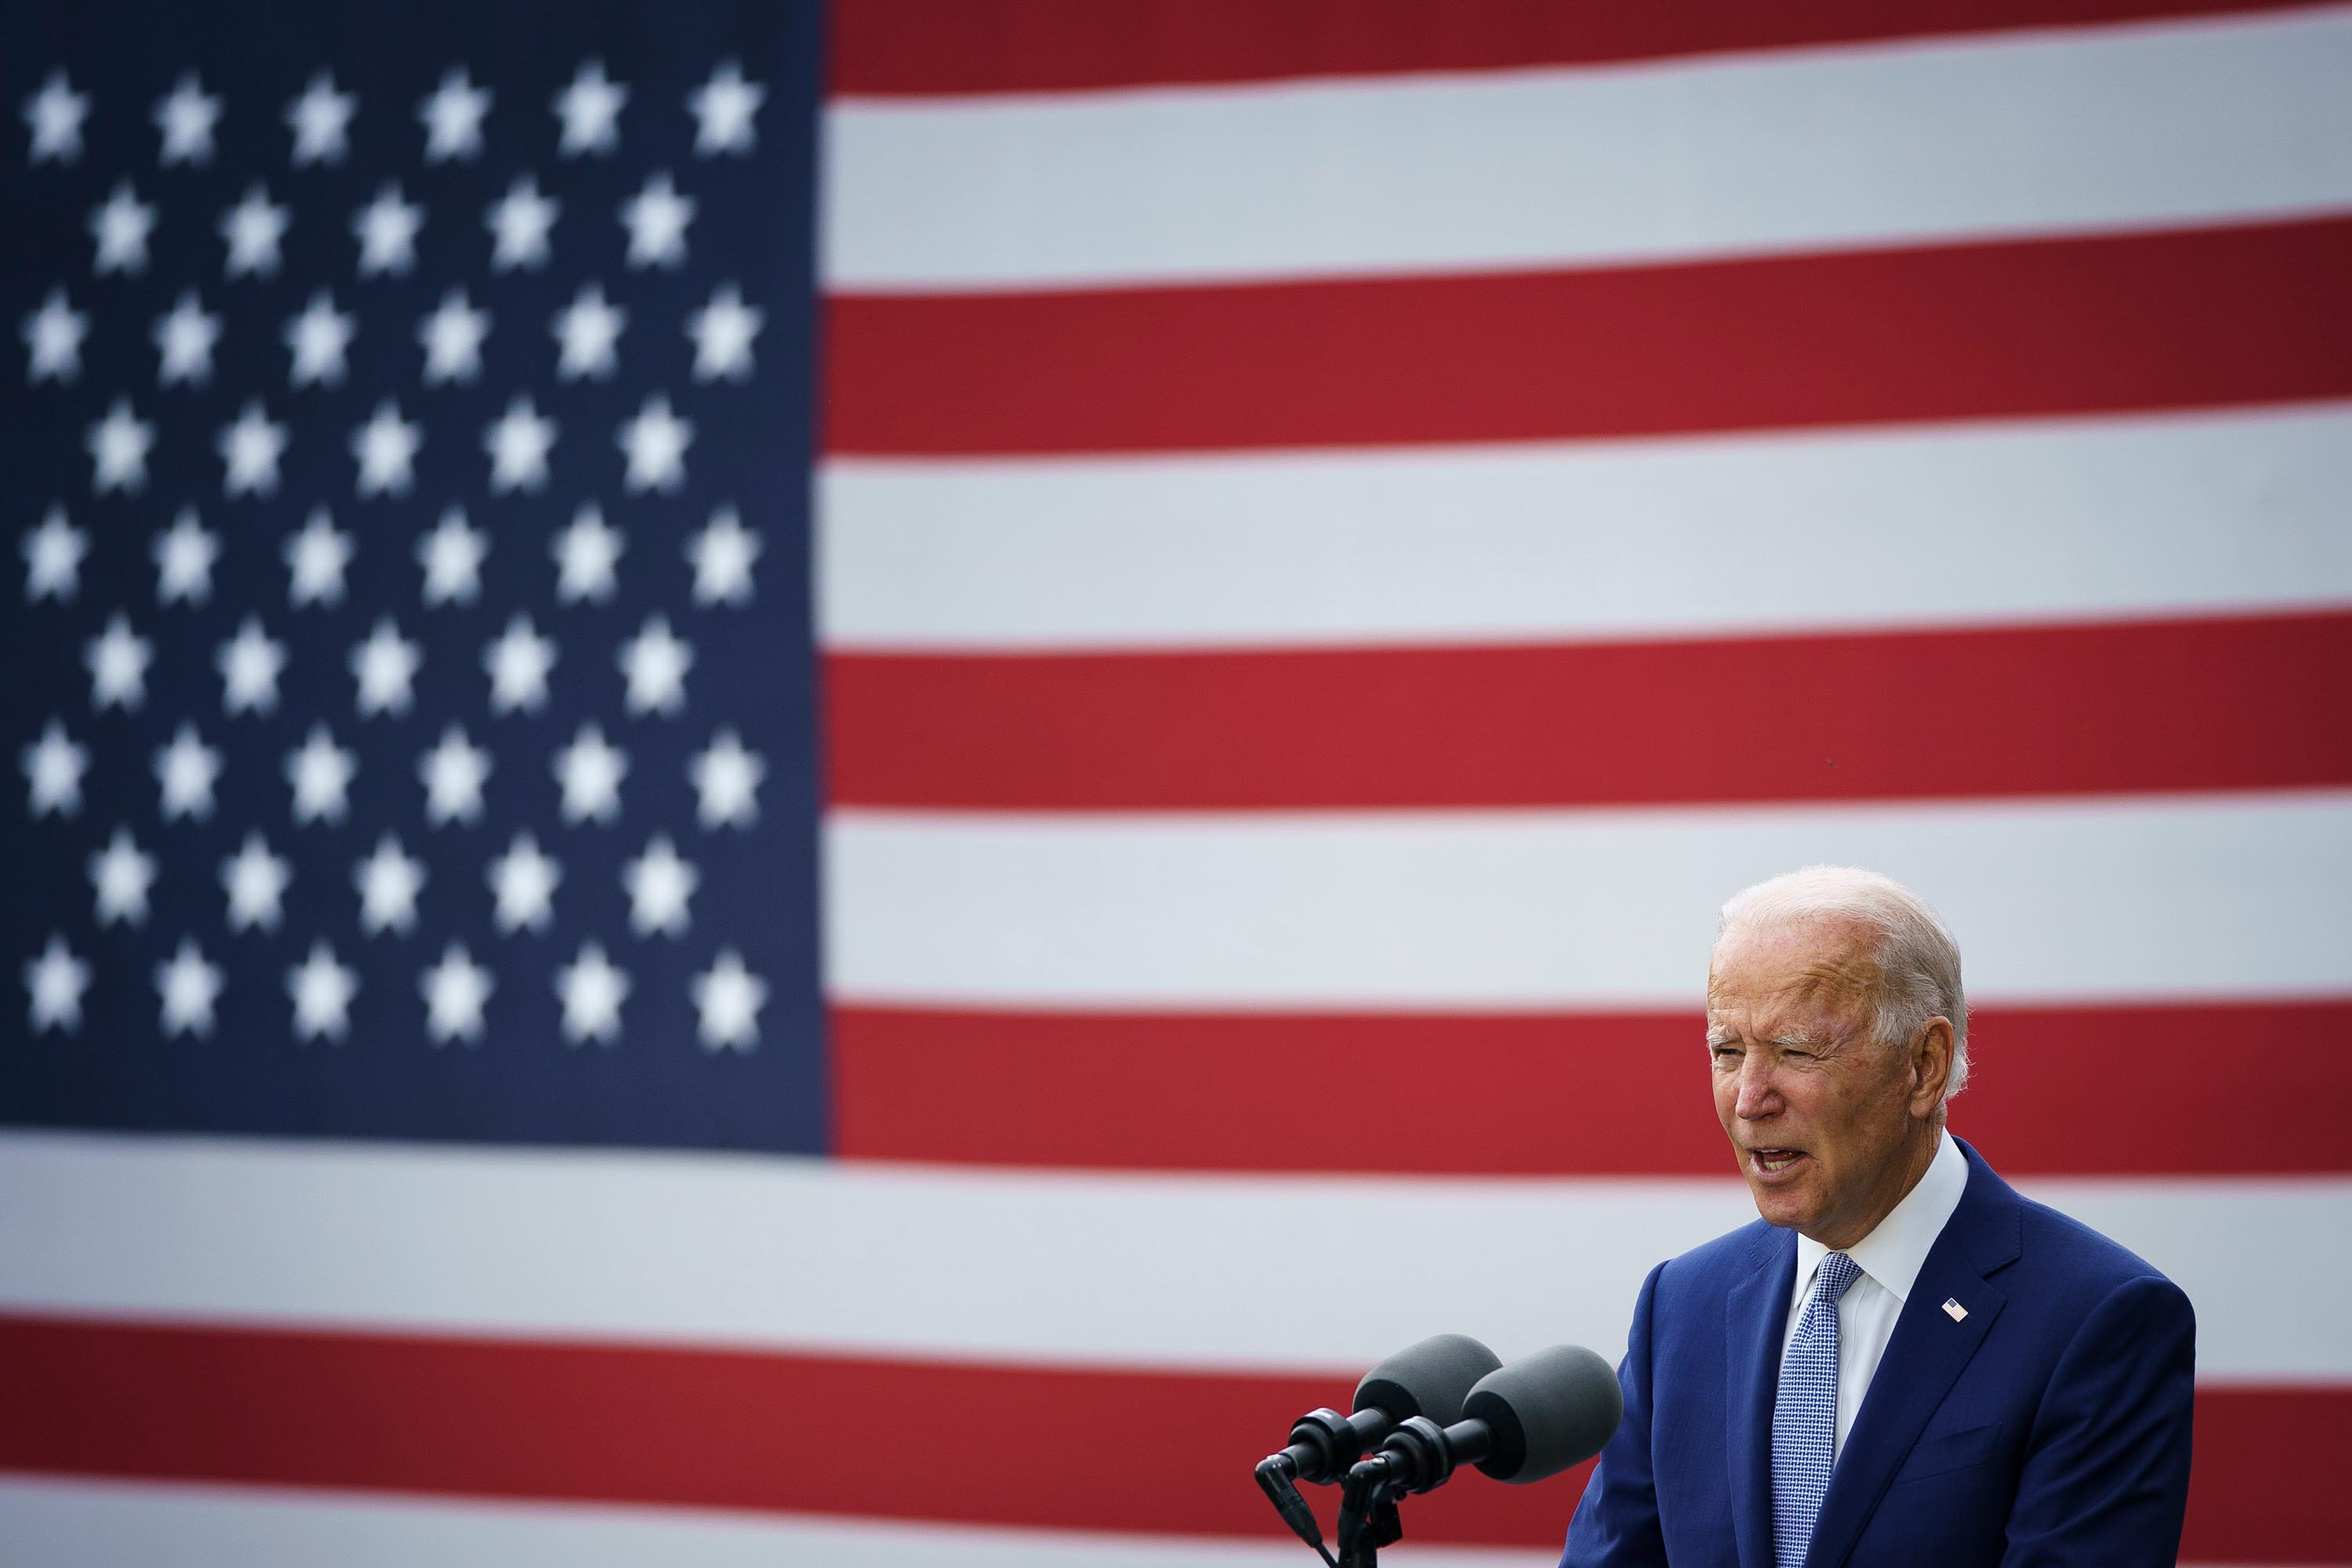 Biden is closing his campaign as he began it by telling voters 'soul of the nation' is at stake